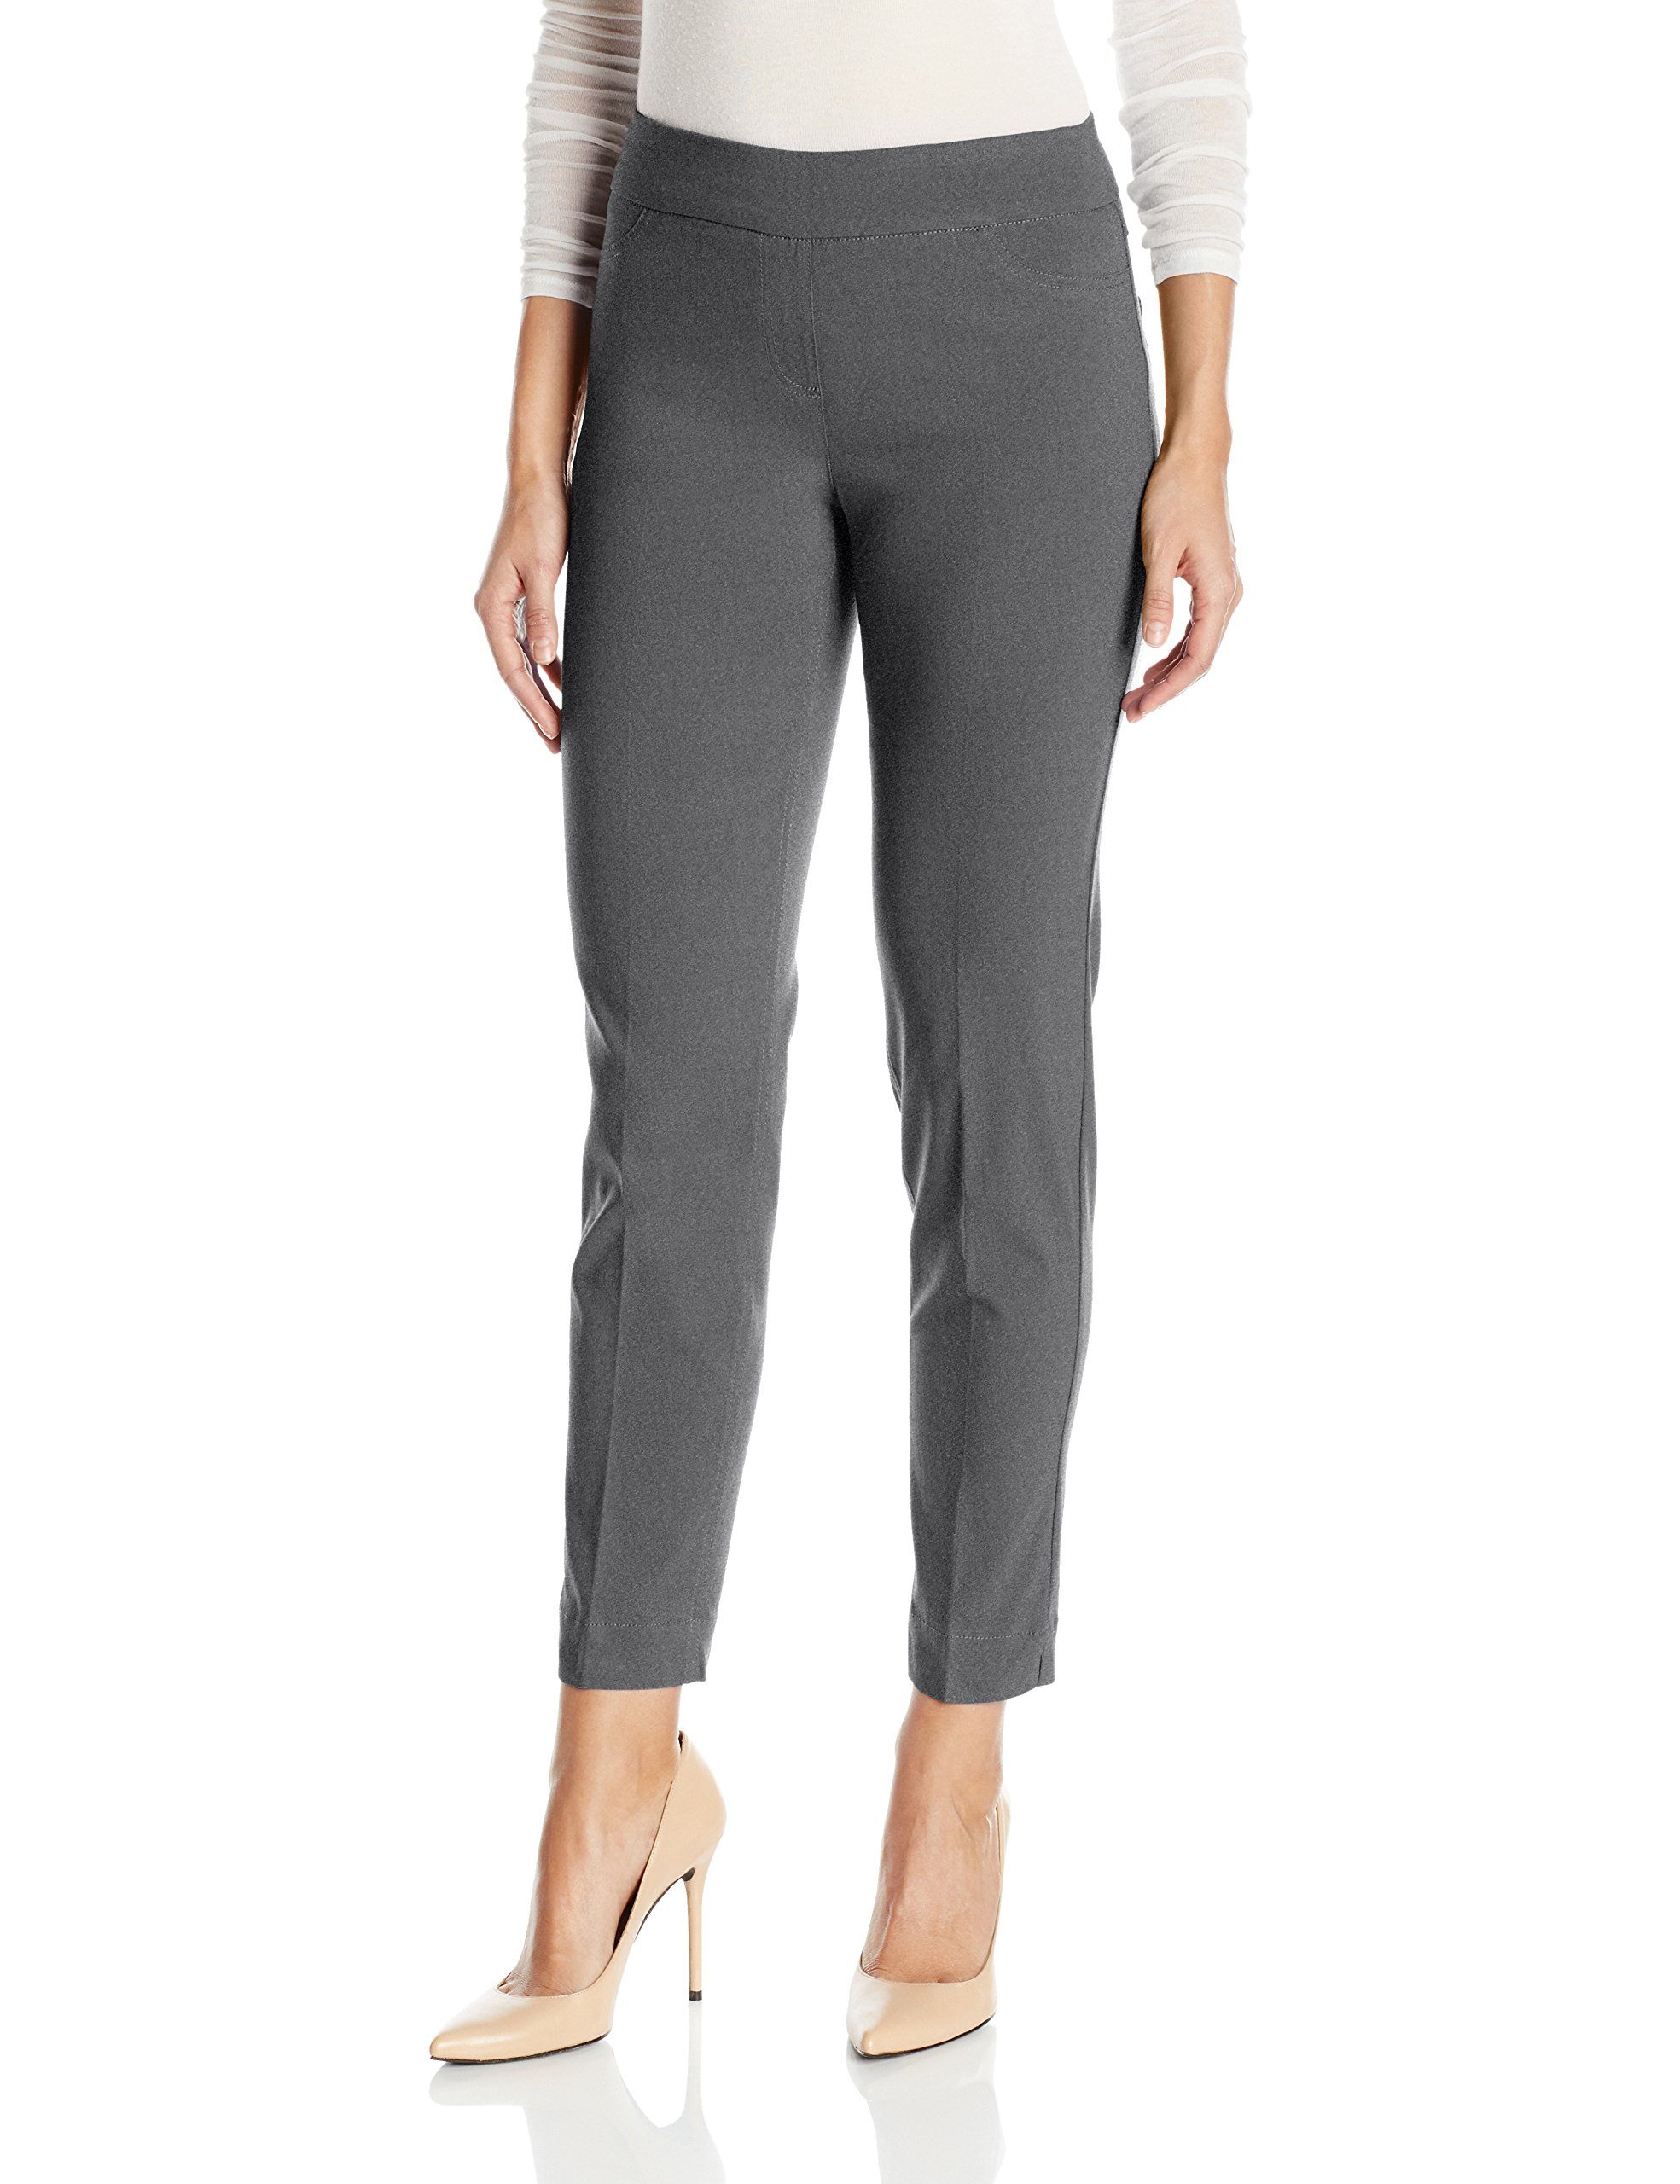 SLIM-SATION Women's Wide Band Pull on Ankle Pant with Tummy Control, Charcoal, 12